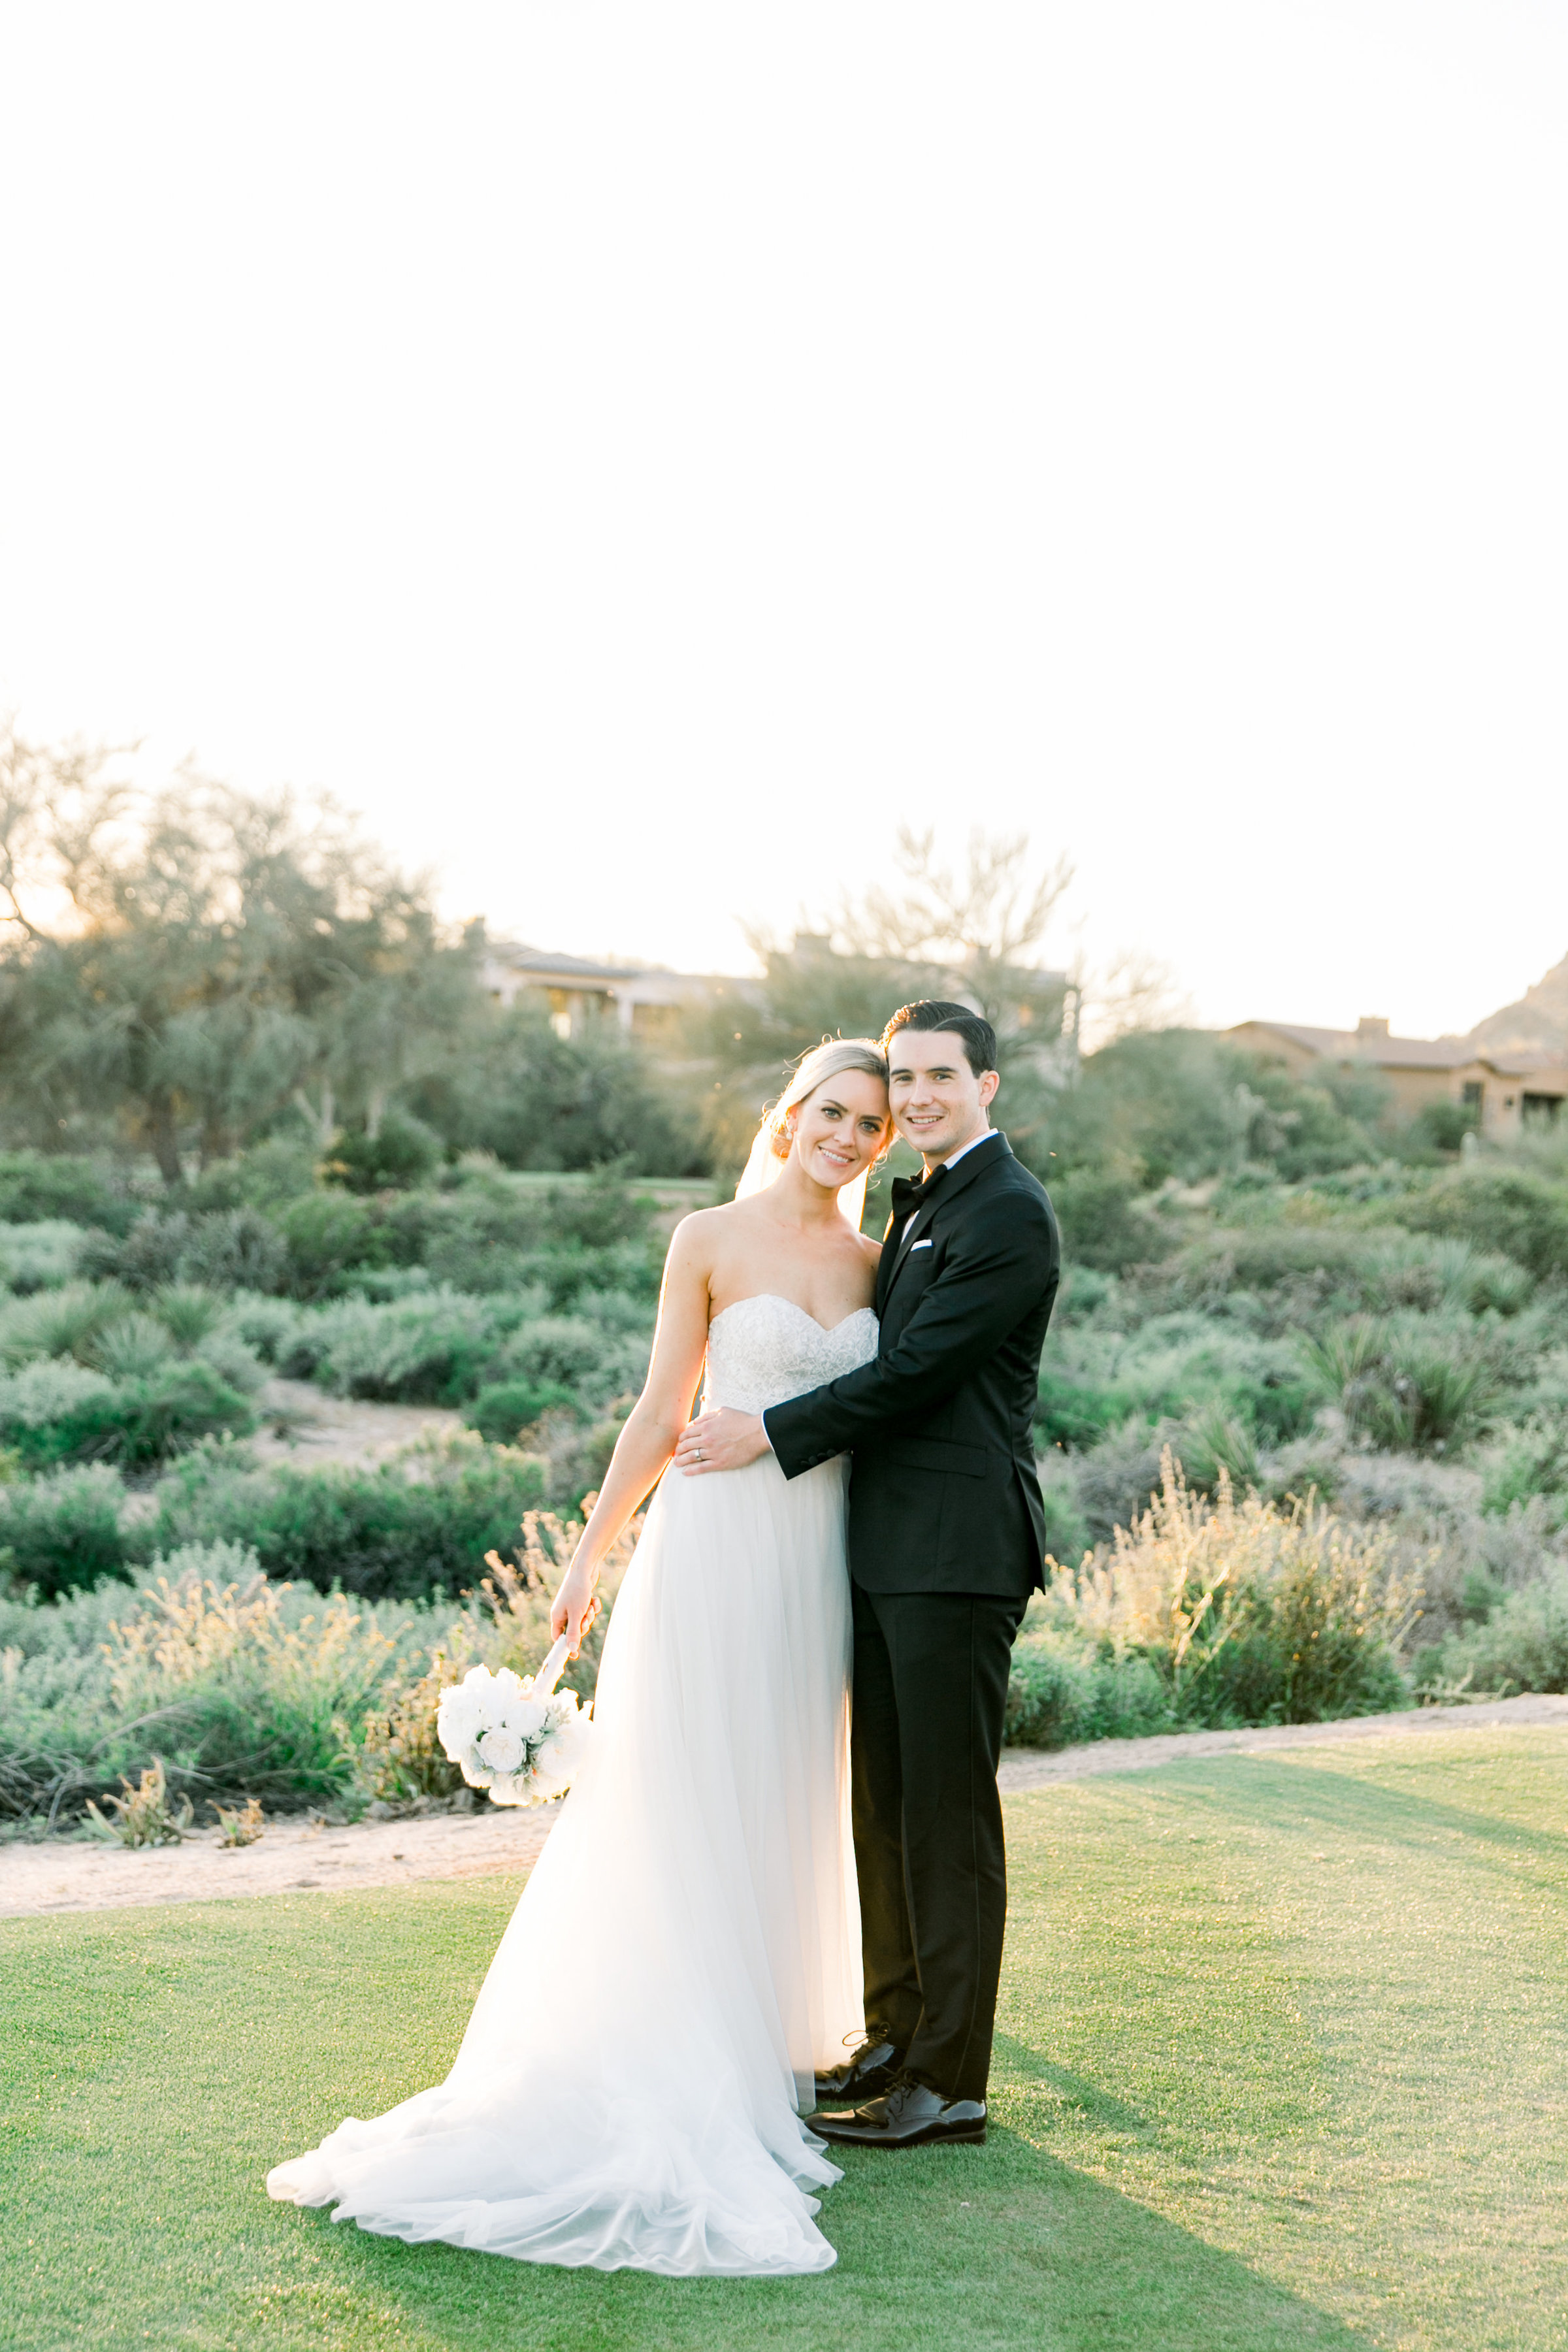 Karlie Colleen Photography - Arizona Wedding at The Troon Scottsdale Country Club - Paige & Shane -676